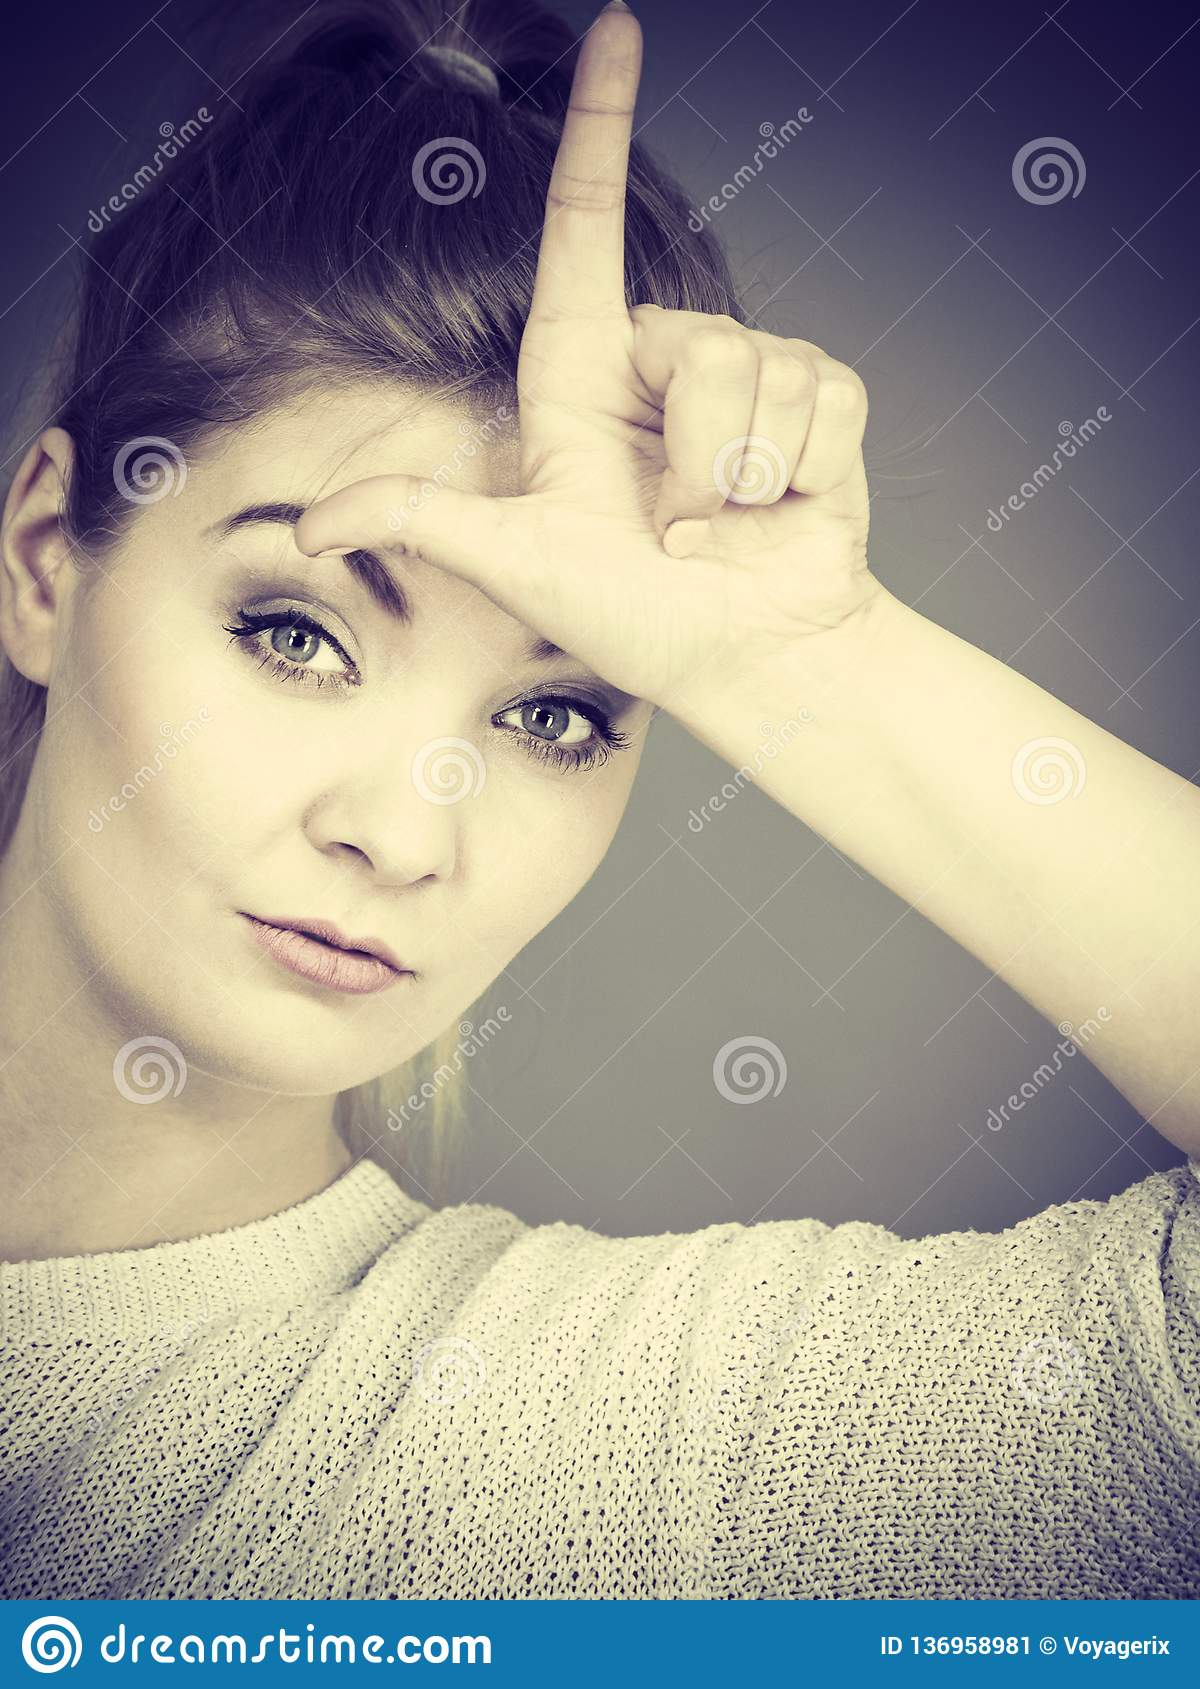 Woman Showing Loser Gesture With L On Forehead Stock Image